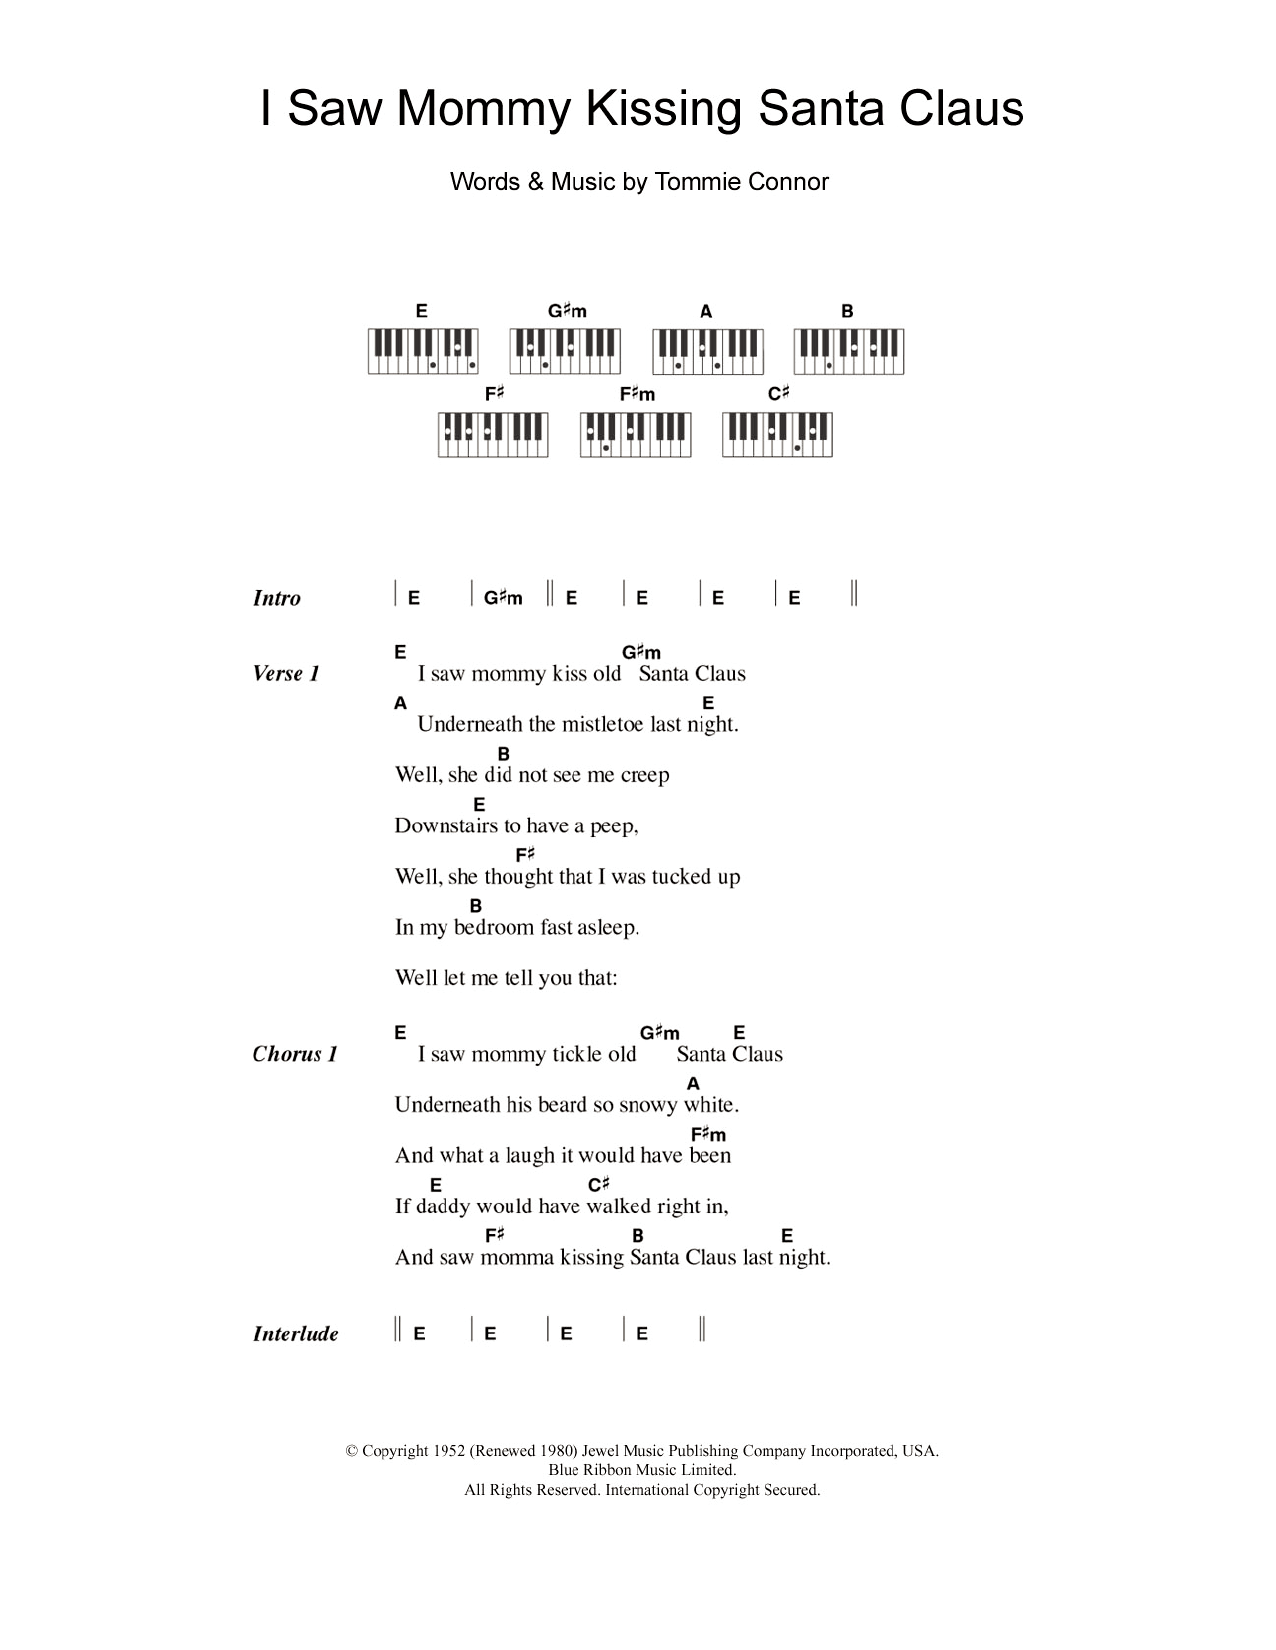 I Saw Mommy Kissing Santa Claus Sheet Music   Tommie Connor   Piano  Chords/Lyrics